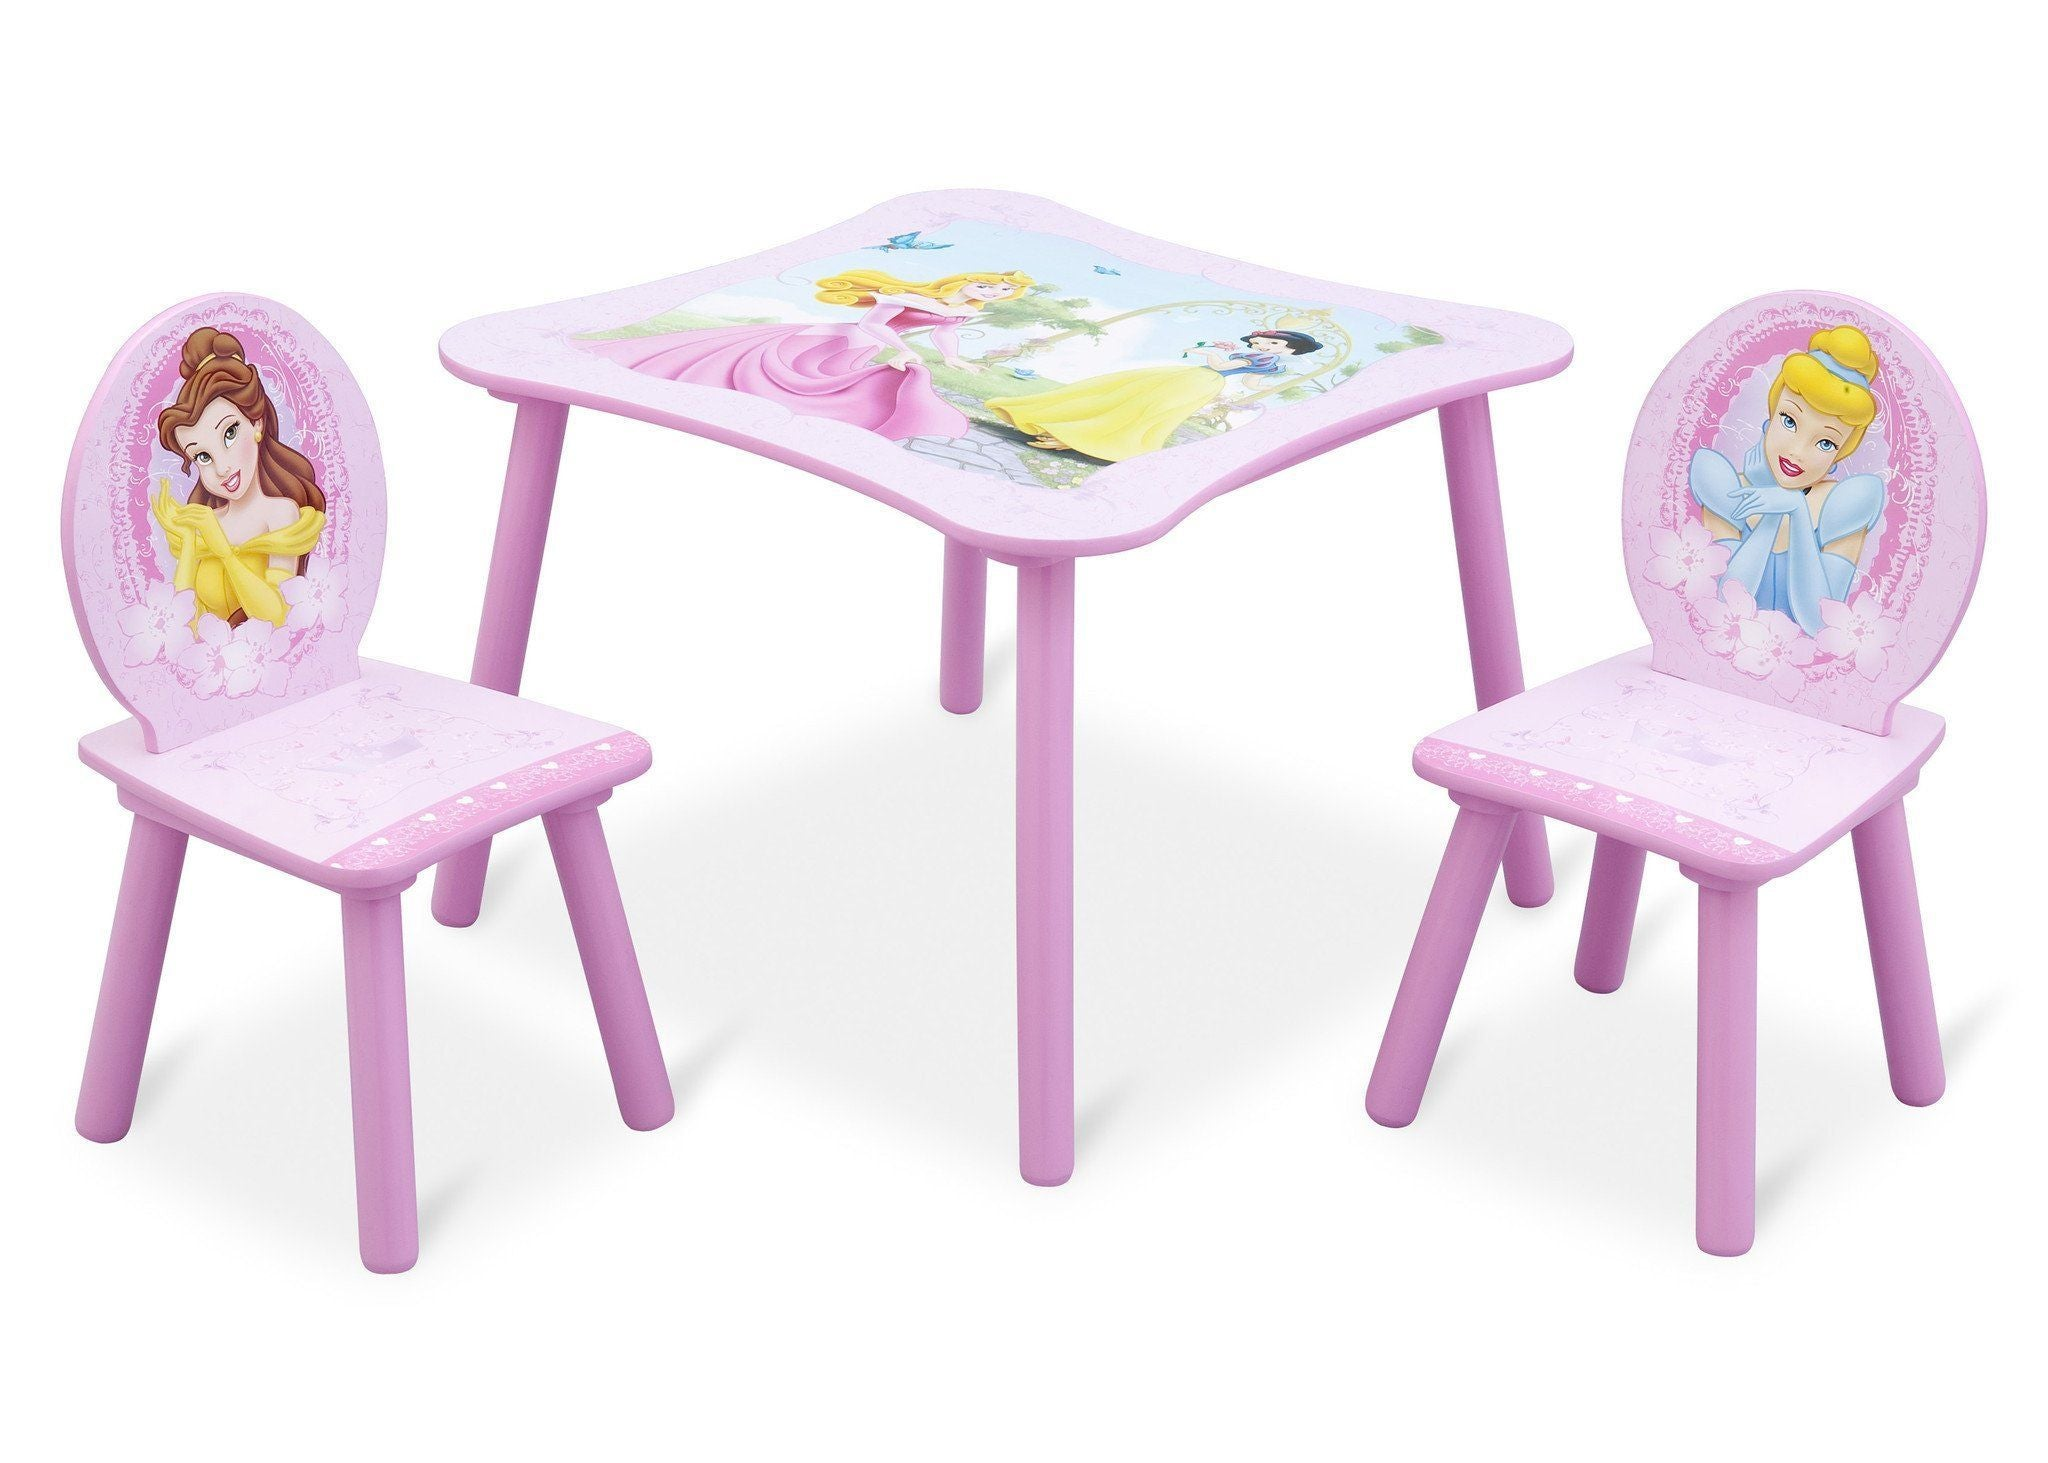 Delta Children Princess Table and Chair Right View a1a  sc 1 st  Delta Children & Princess Table u0026 Chair Set | Delta Children